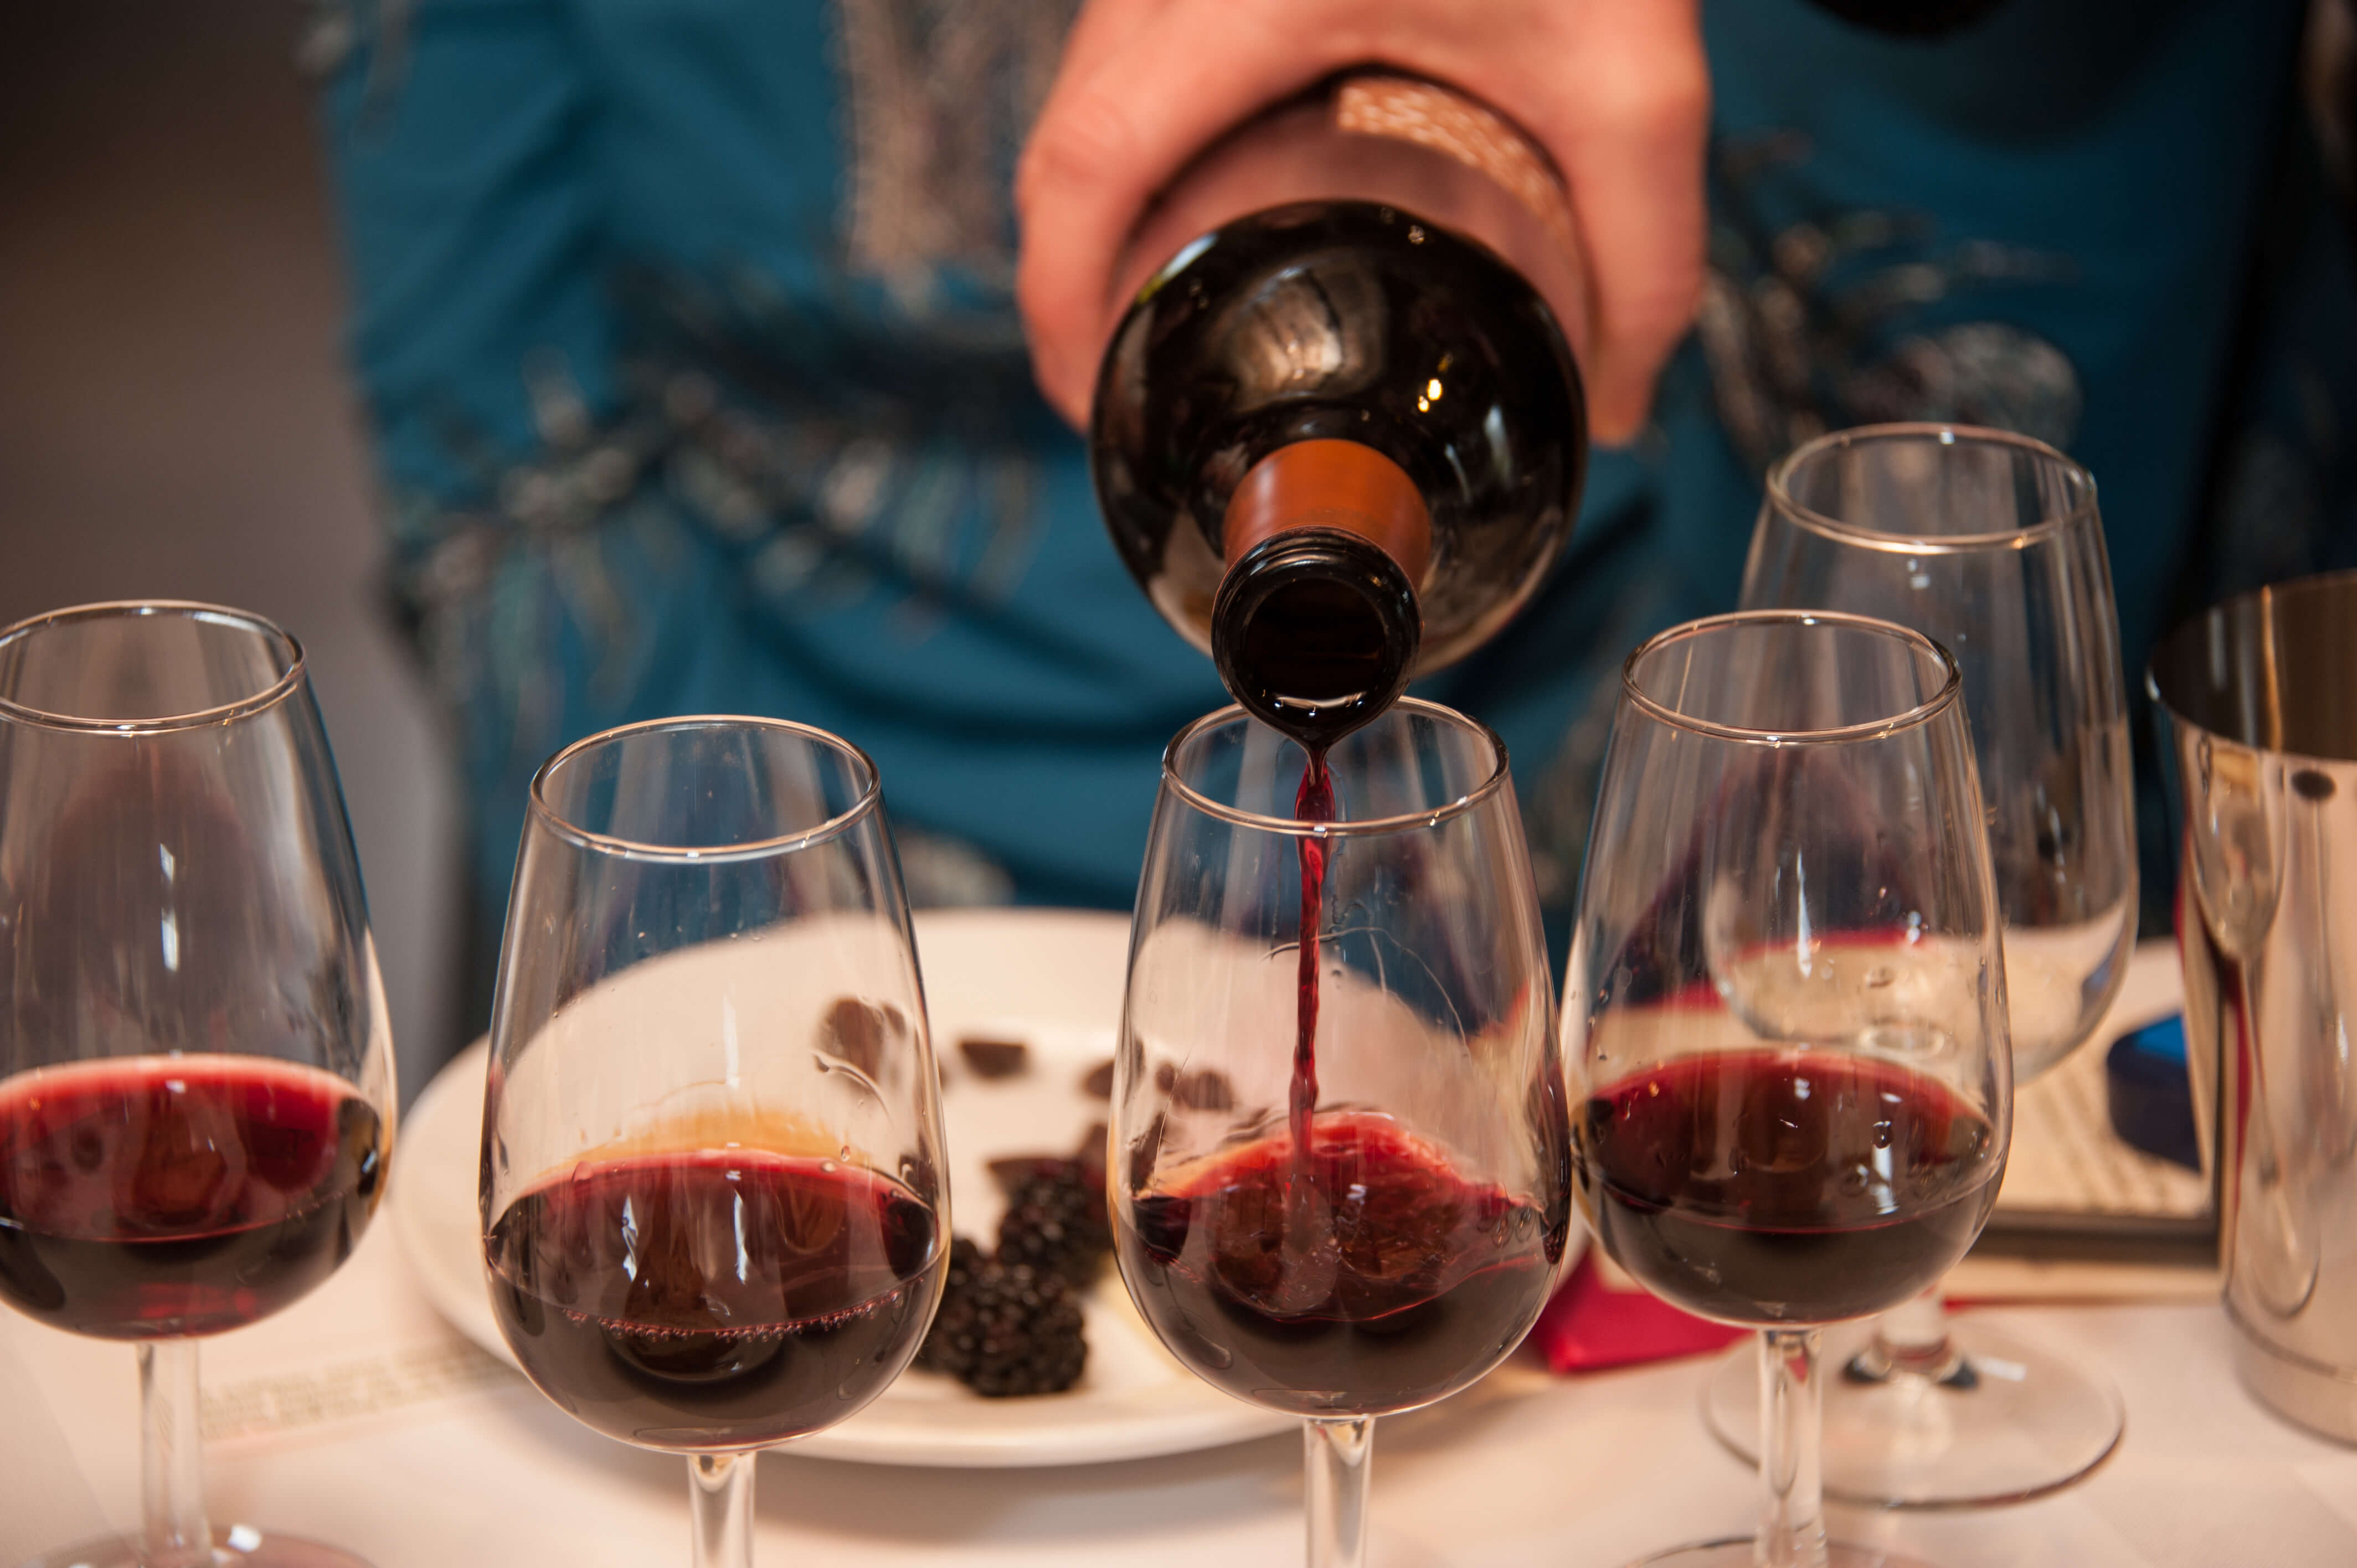 Five small glasses of red wine being poured for a vertical tasting event.